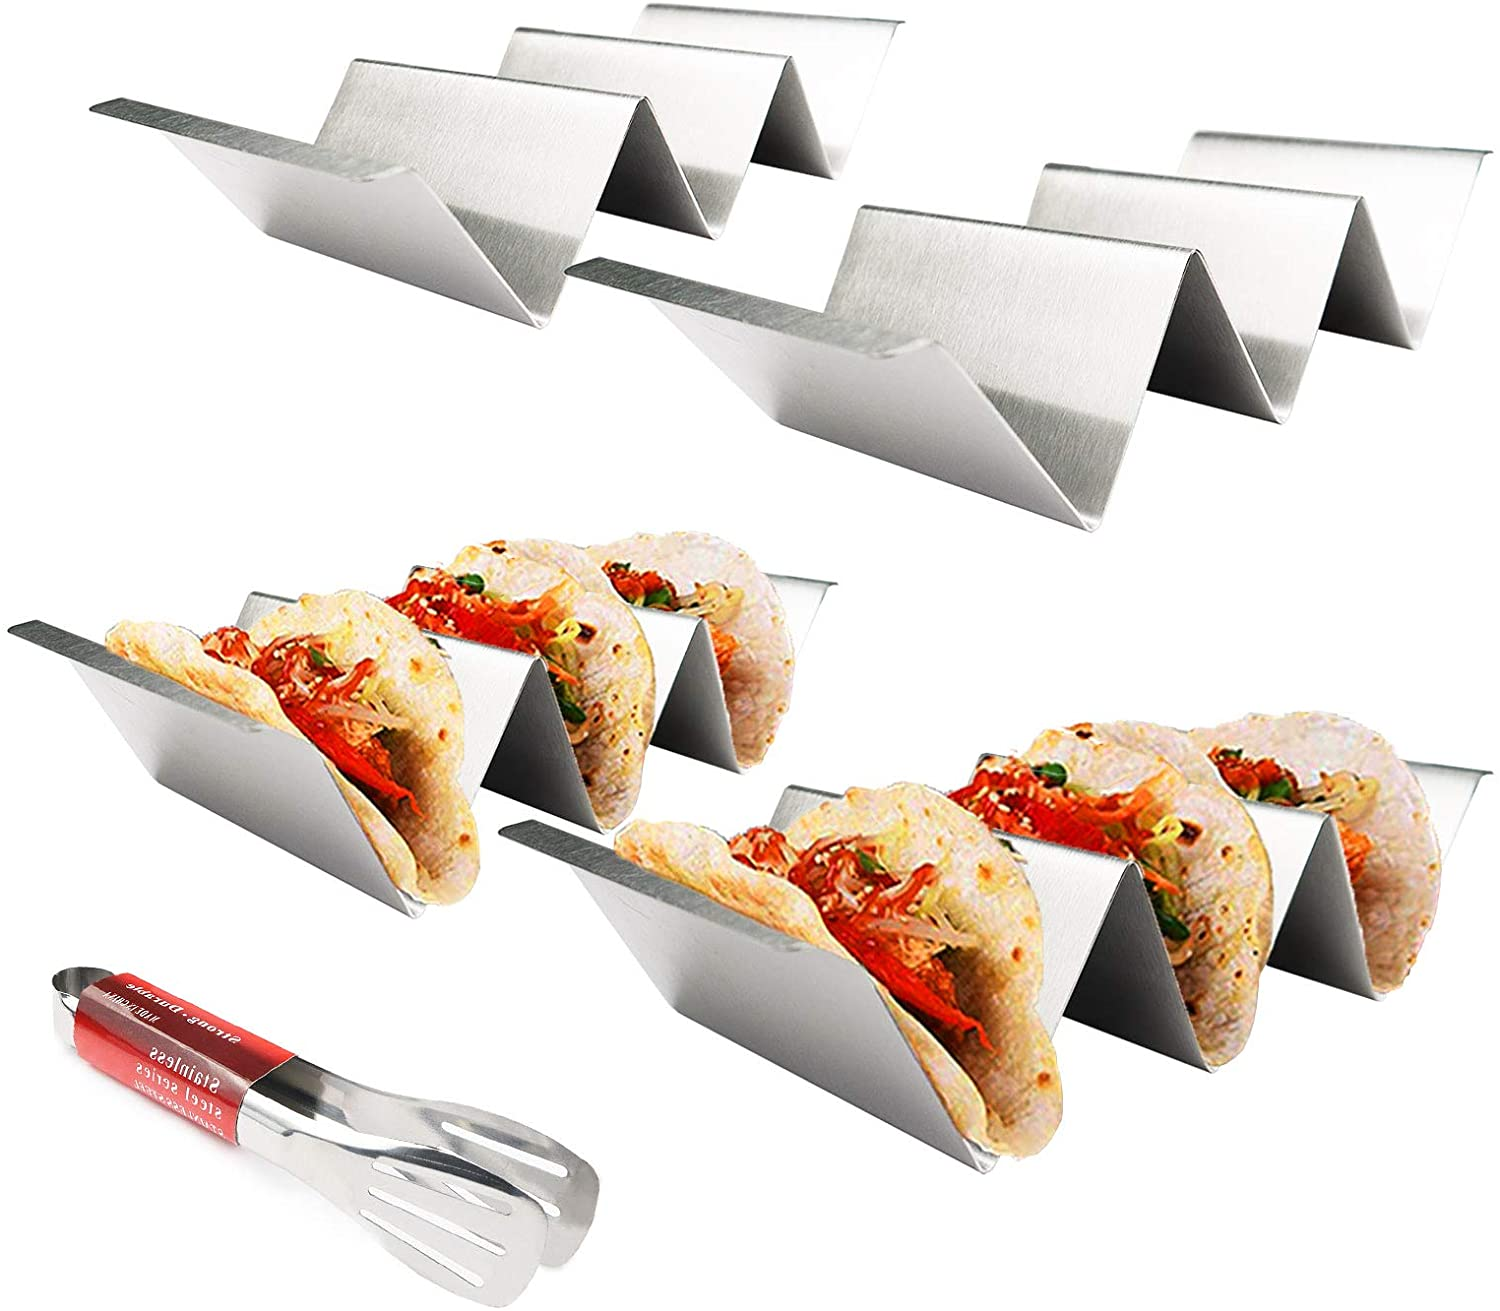 Taco Holder Stands Set of 4,Stainless Steel Taco Holders With Handles Safe for Oven,Grill and Dishwasher